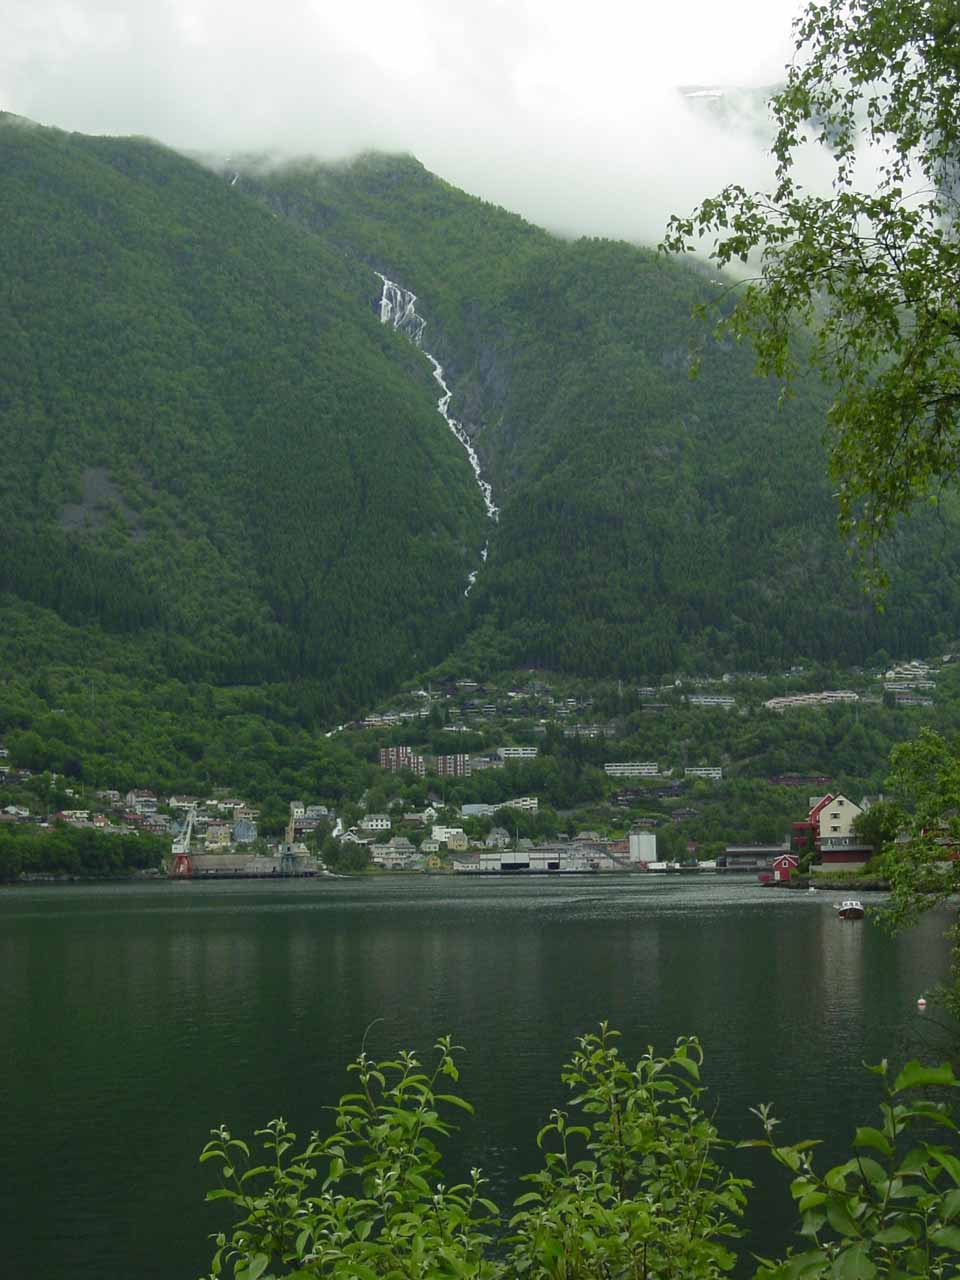 Further north of Espelandsfossen at the end of Oddadalen  was the well-situated town of Odda right at the far southern end of the South Fjord (Sørfjorden)